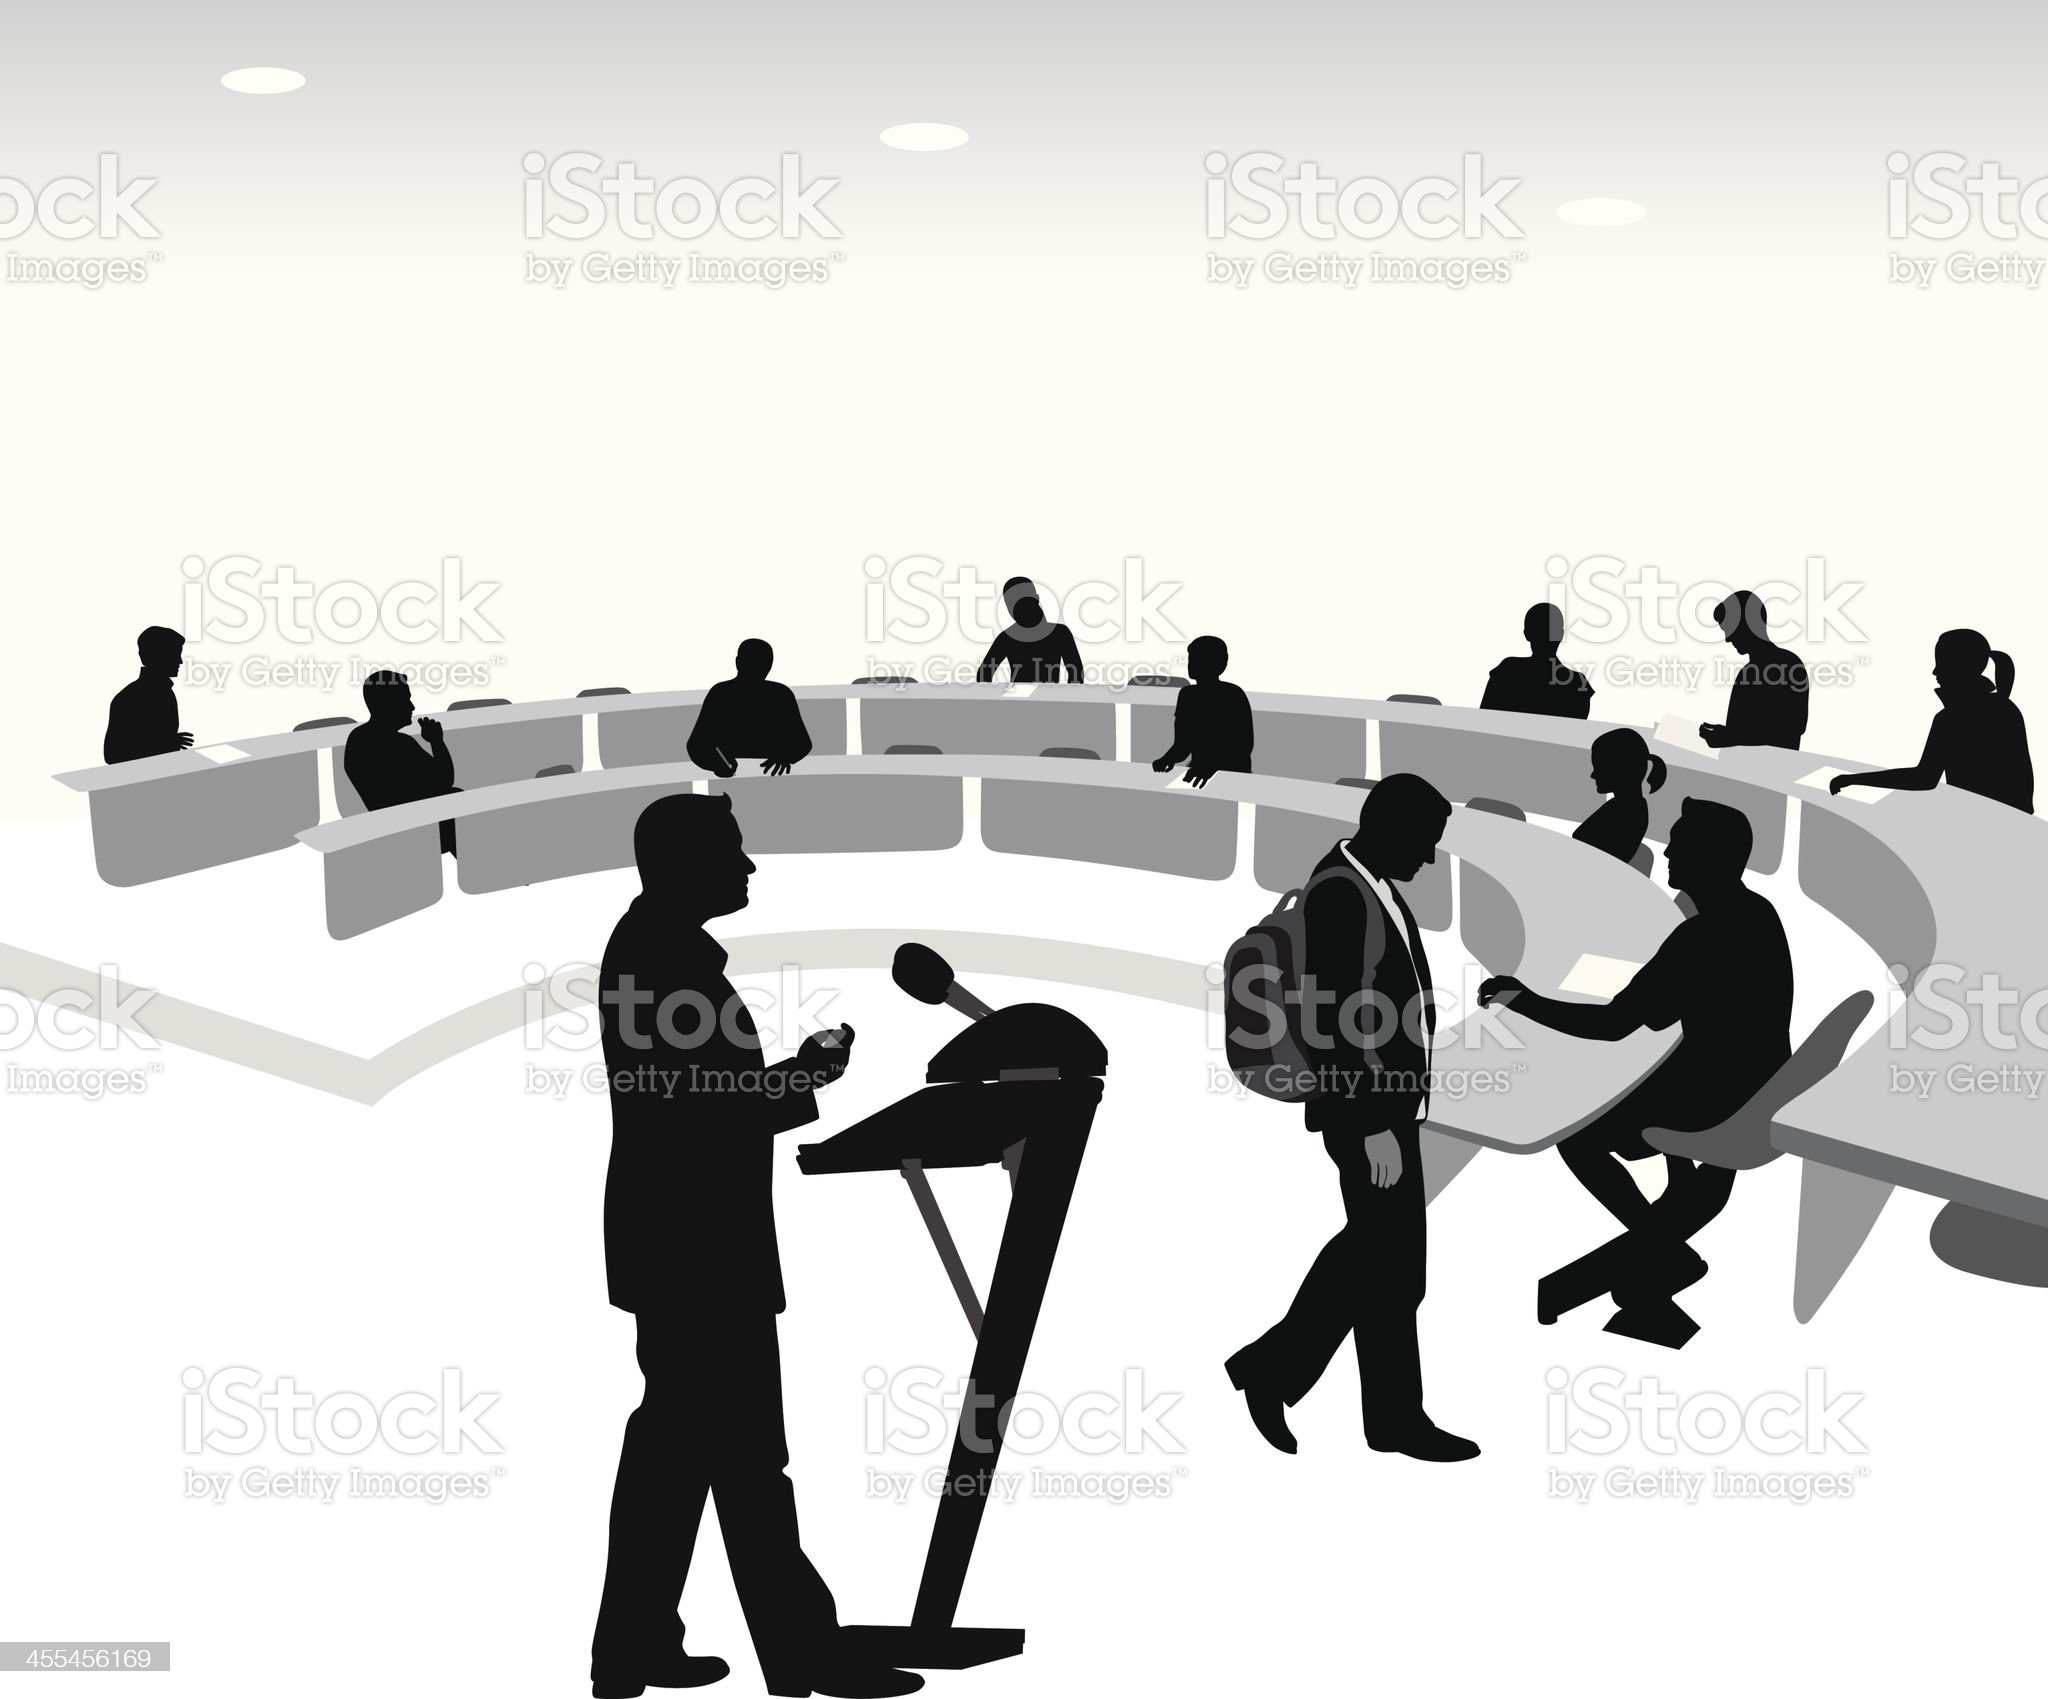 Lecture Hall Vector Silhouette royalty-free stock vector art